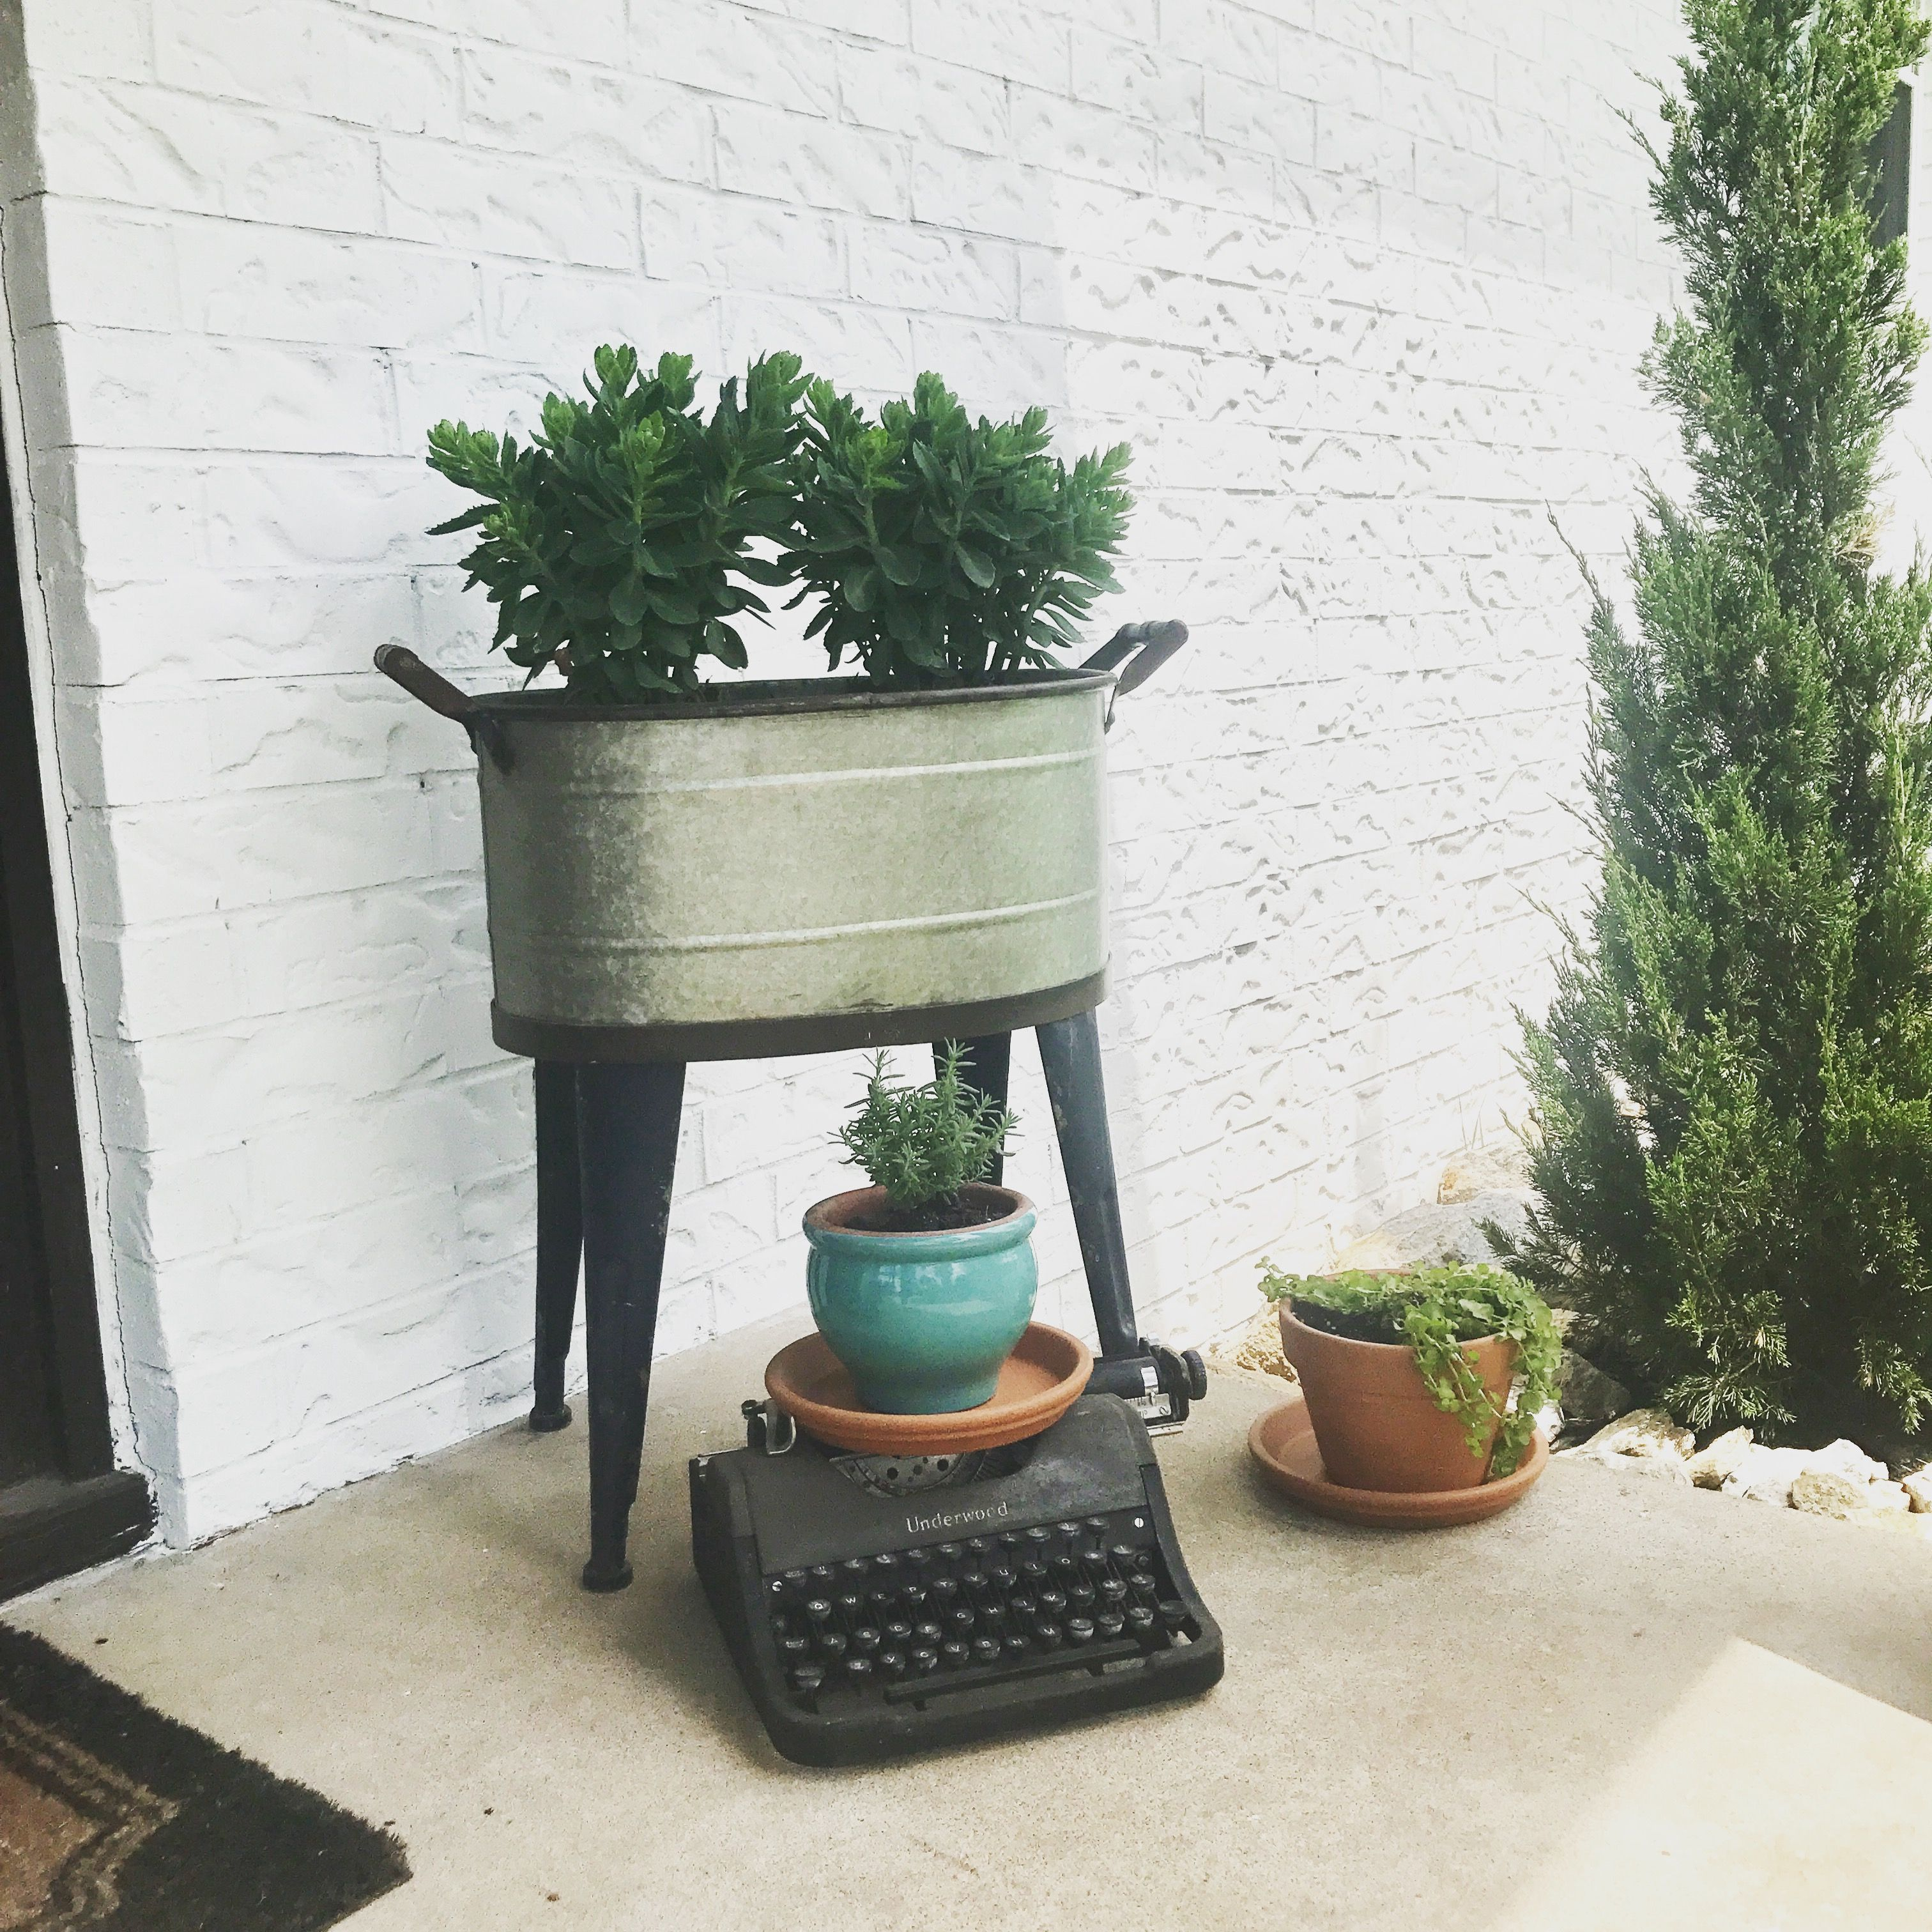 Diy Design Objects: Vintage Typewriter! Utilize Cool, Old Objects In